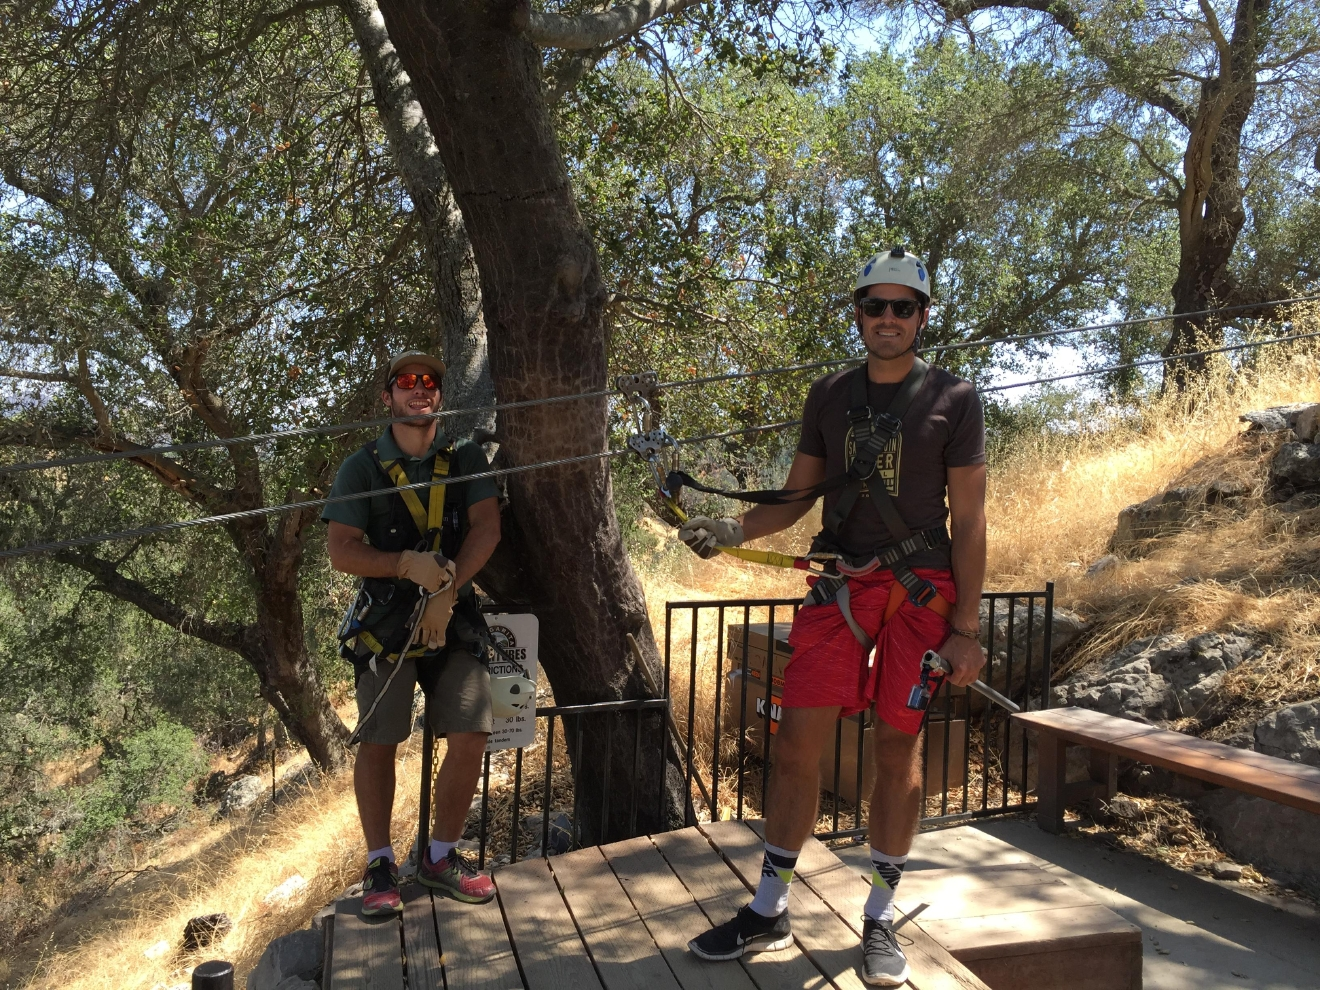 In a three hour tour with Margarita Adventures, you'll hit six ziplines of various heights and speeds.